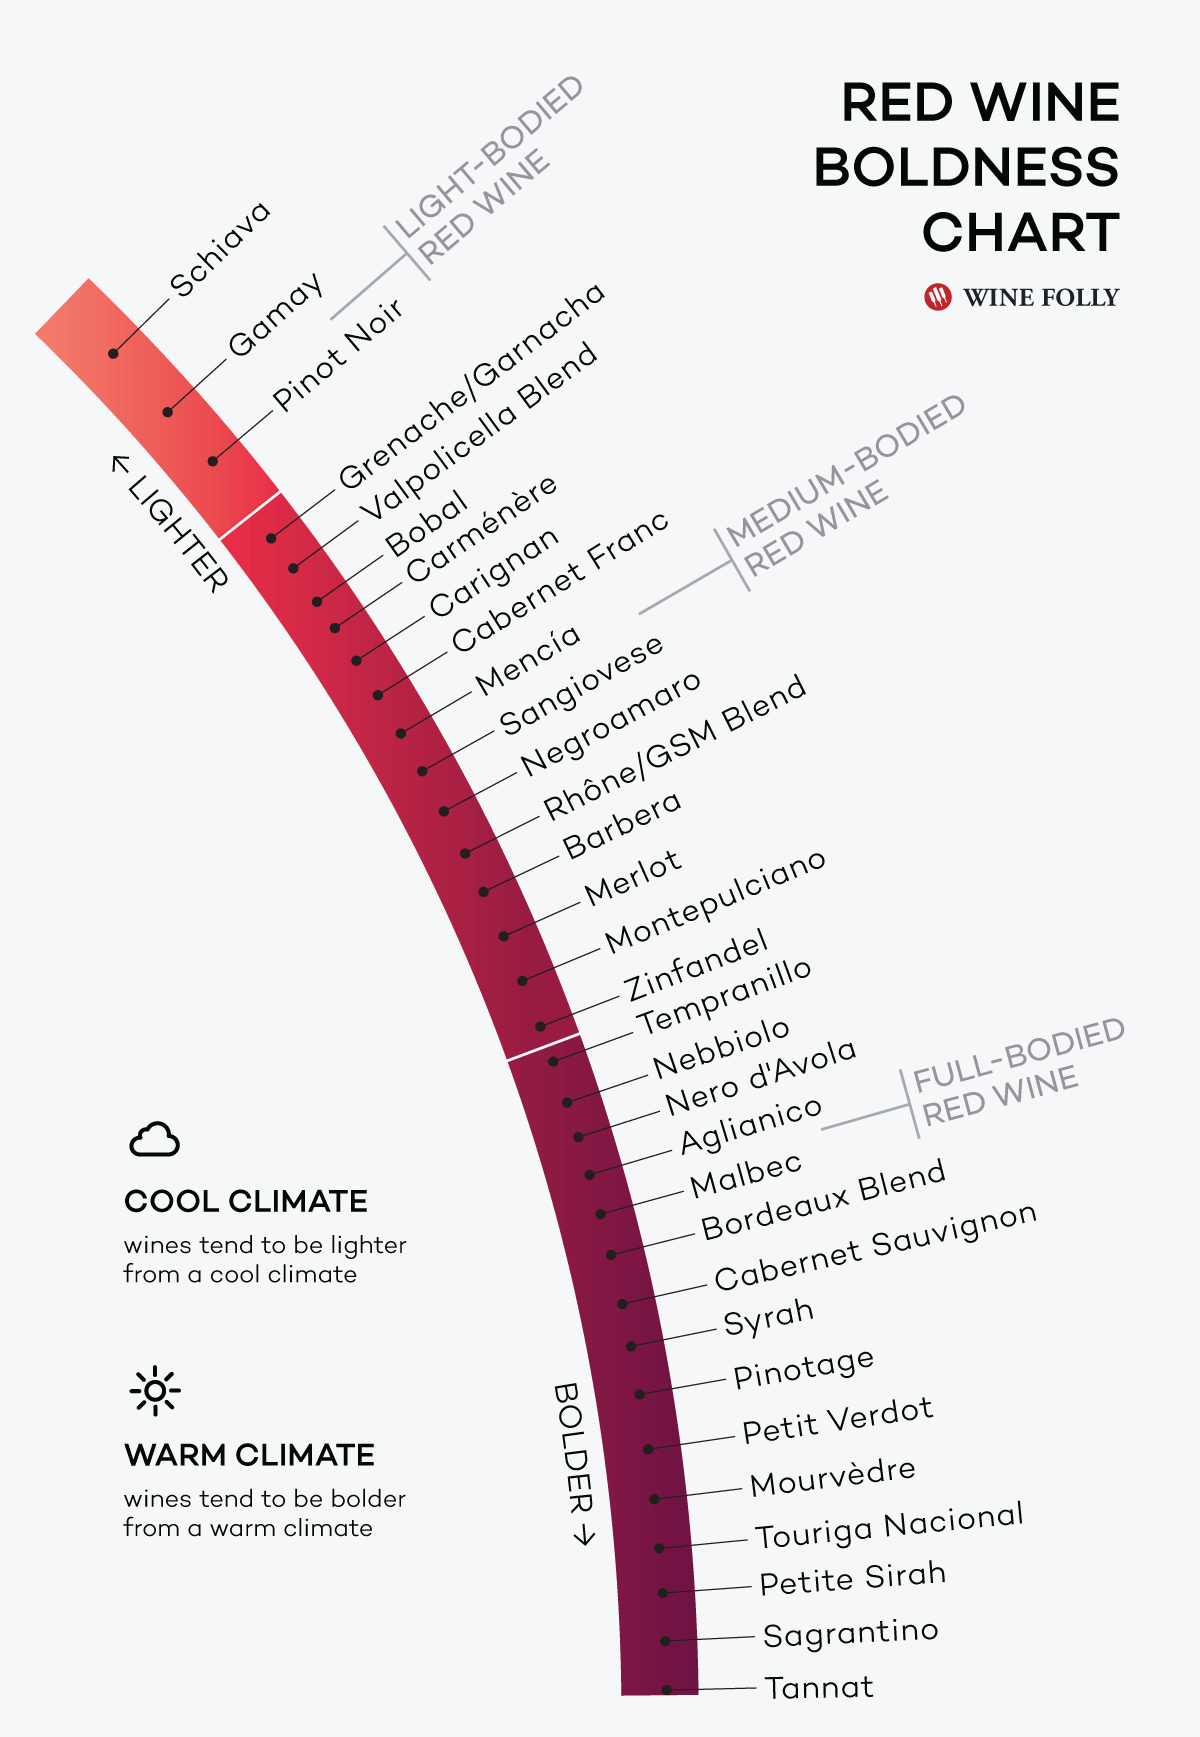 what color tells you about a wine wine folly red wines and chart